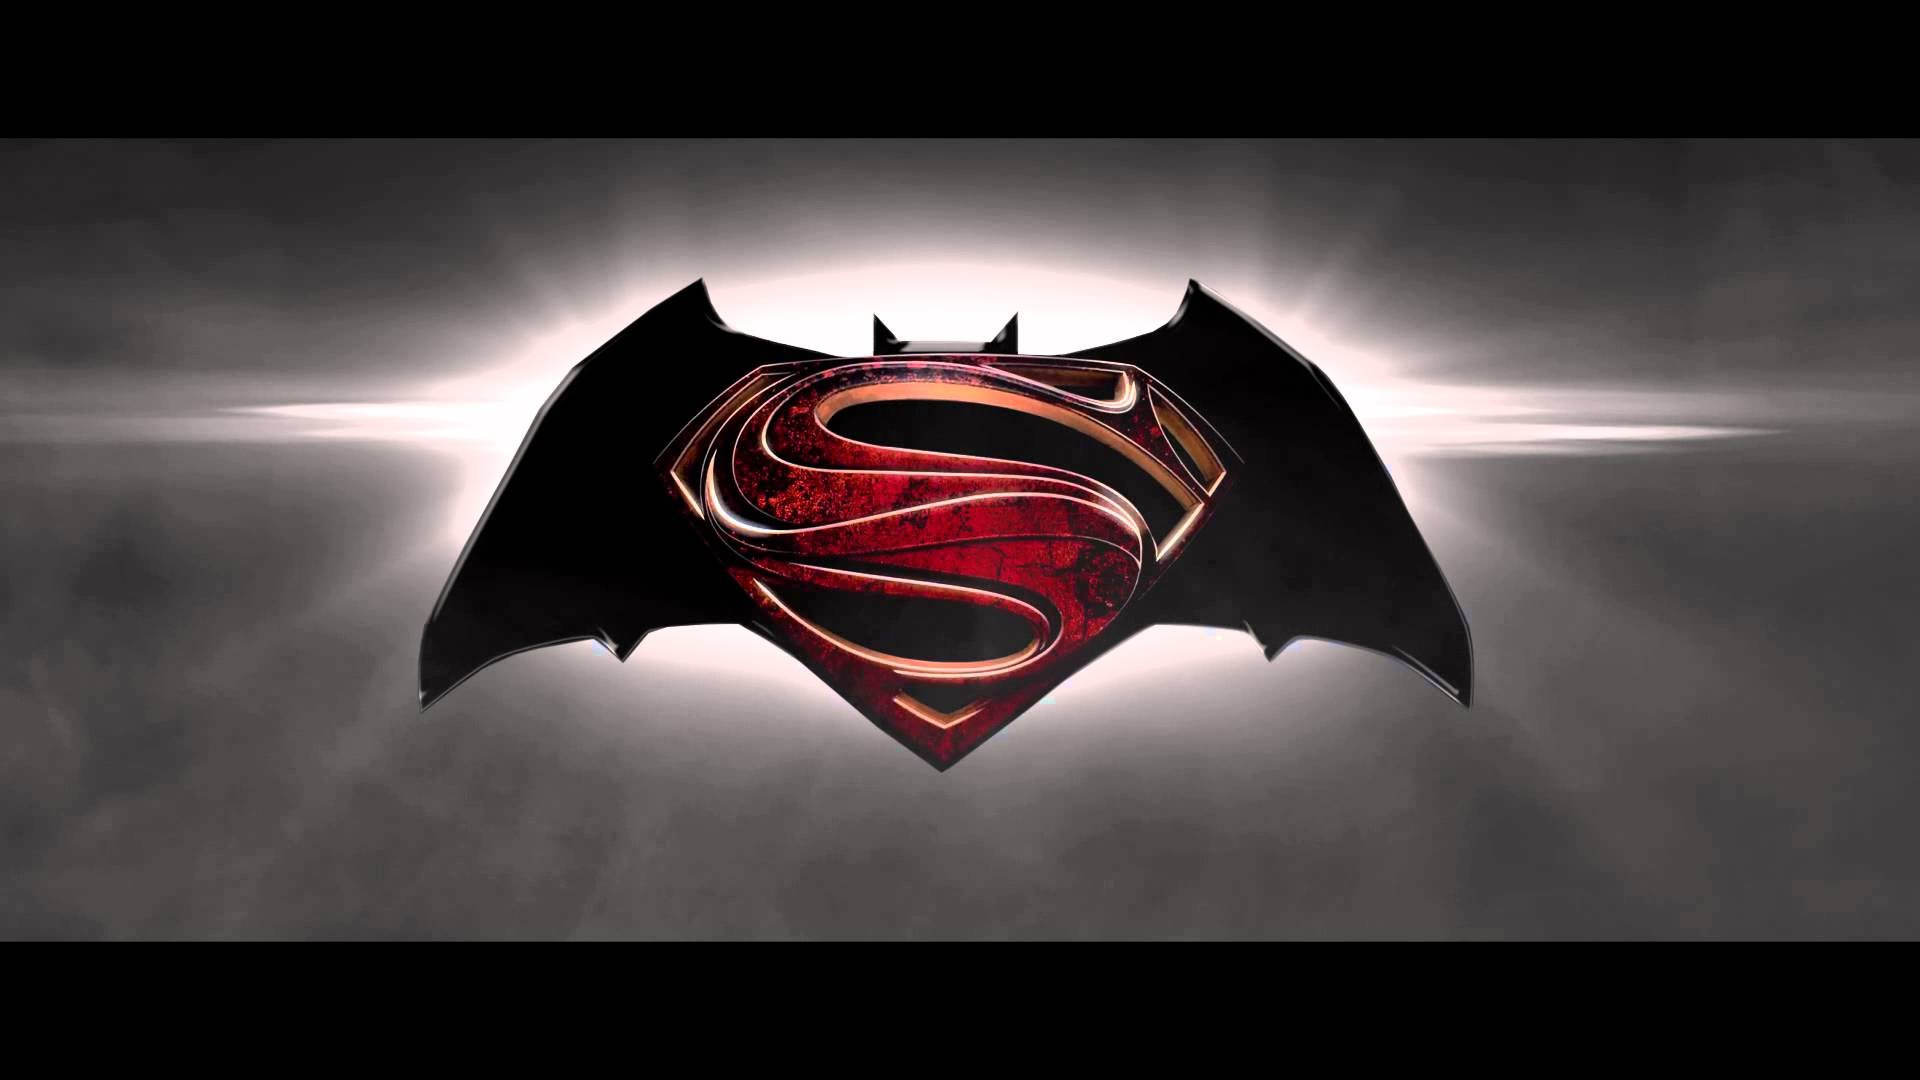 Batman v superman adventure action dc comics d c superman - Superhero iphone wallpaper hd ...